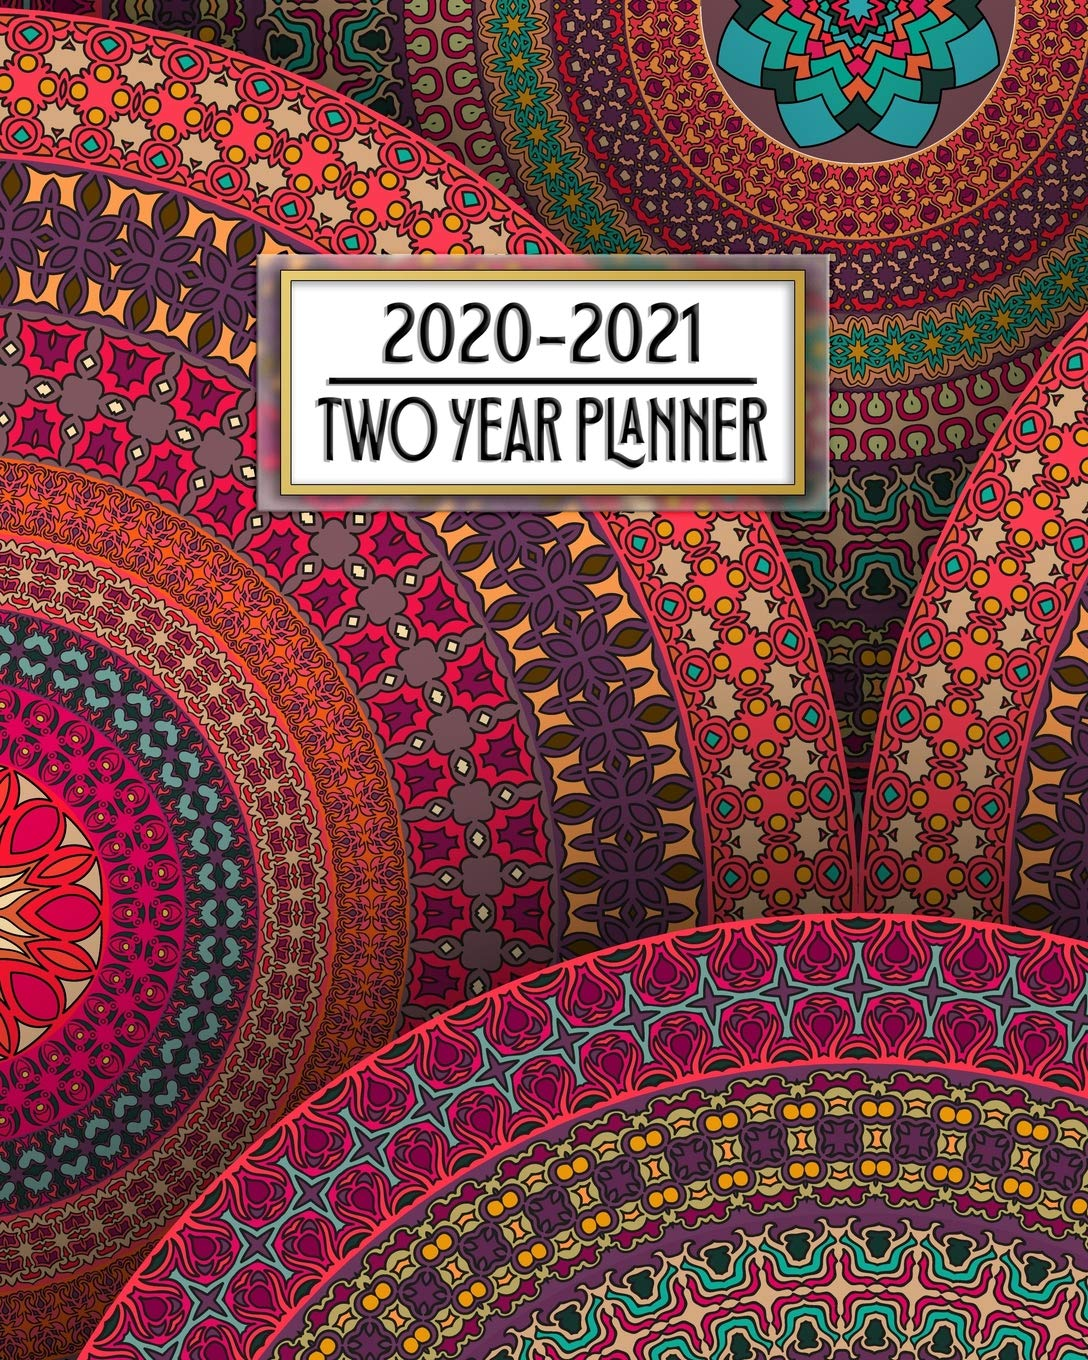 Amazon.com: 2020 - 2021 Two Year Planner: Pretty Colorful ...